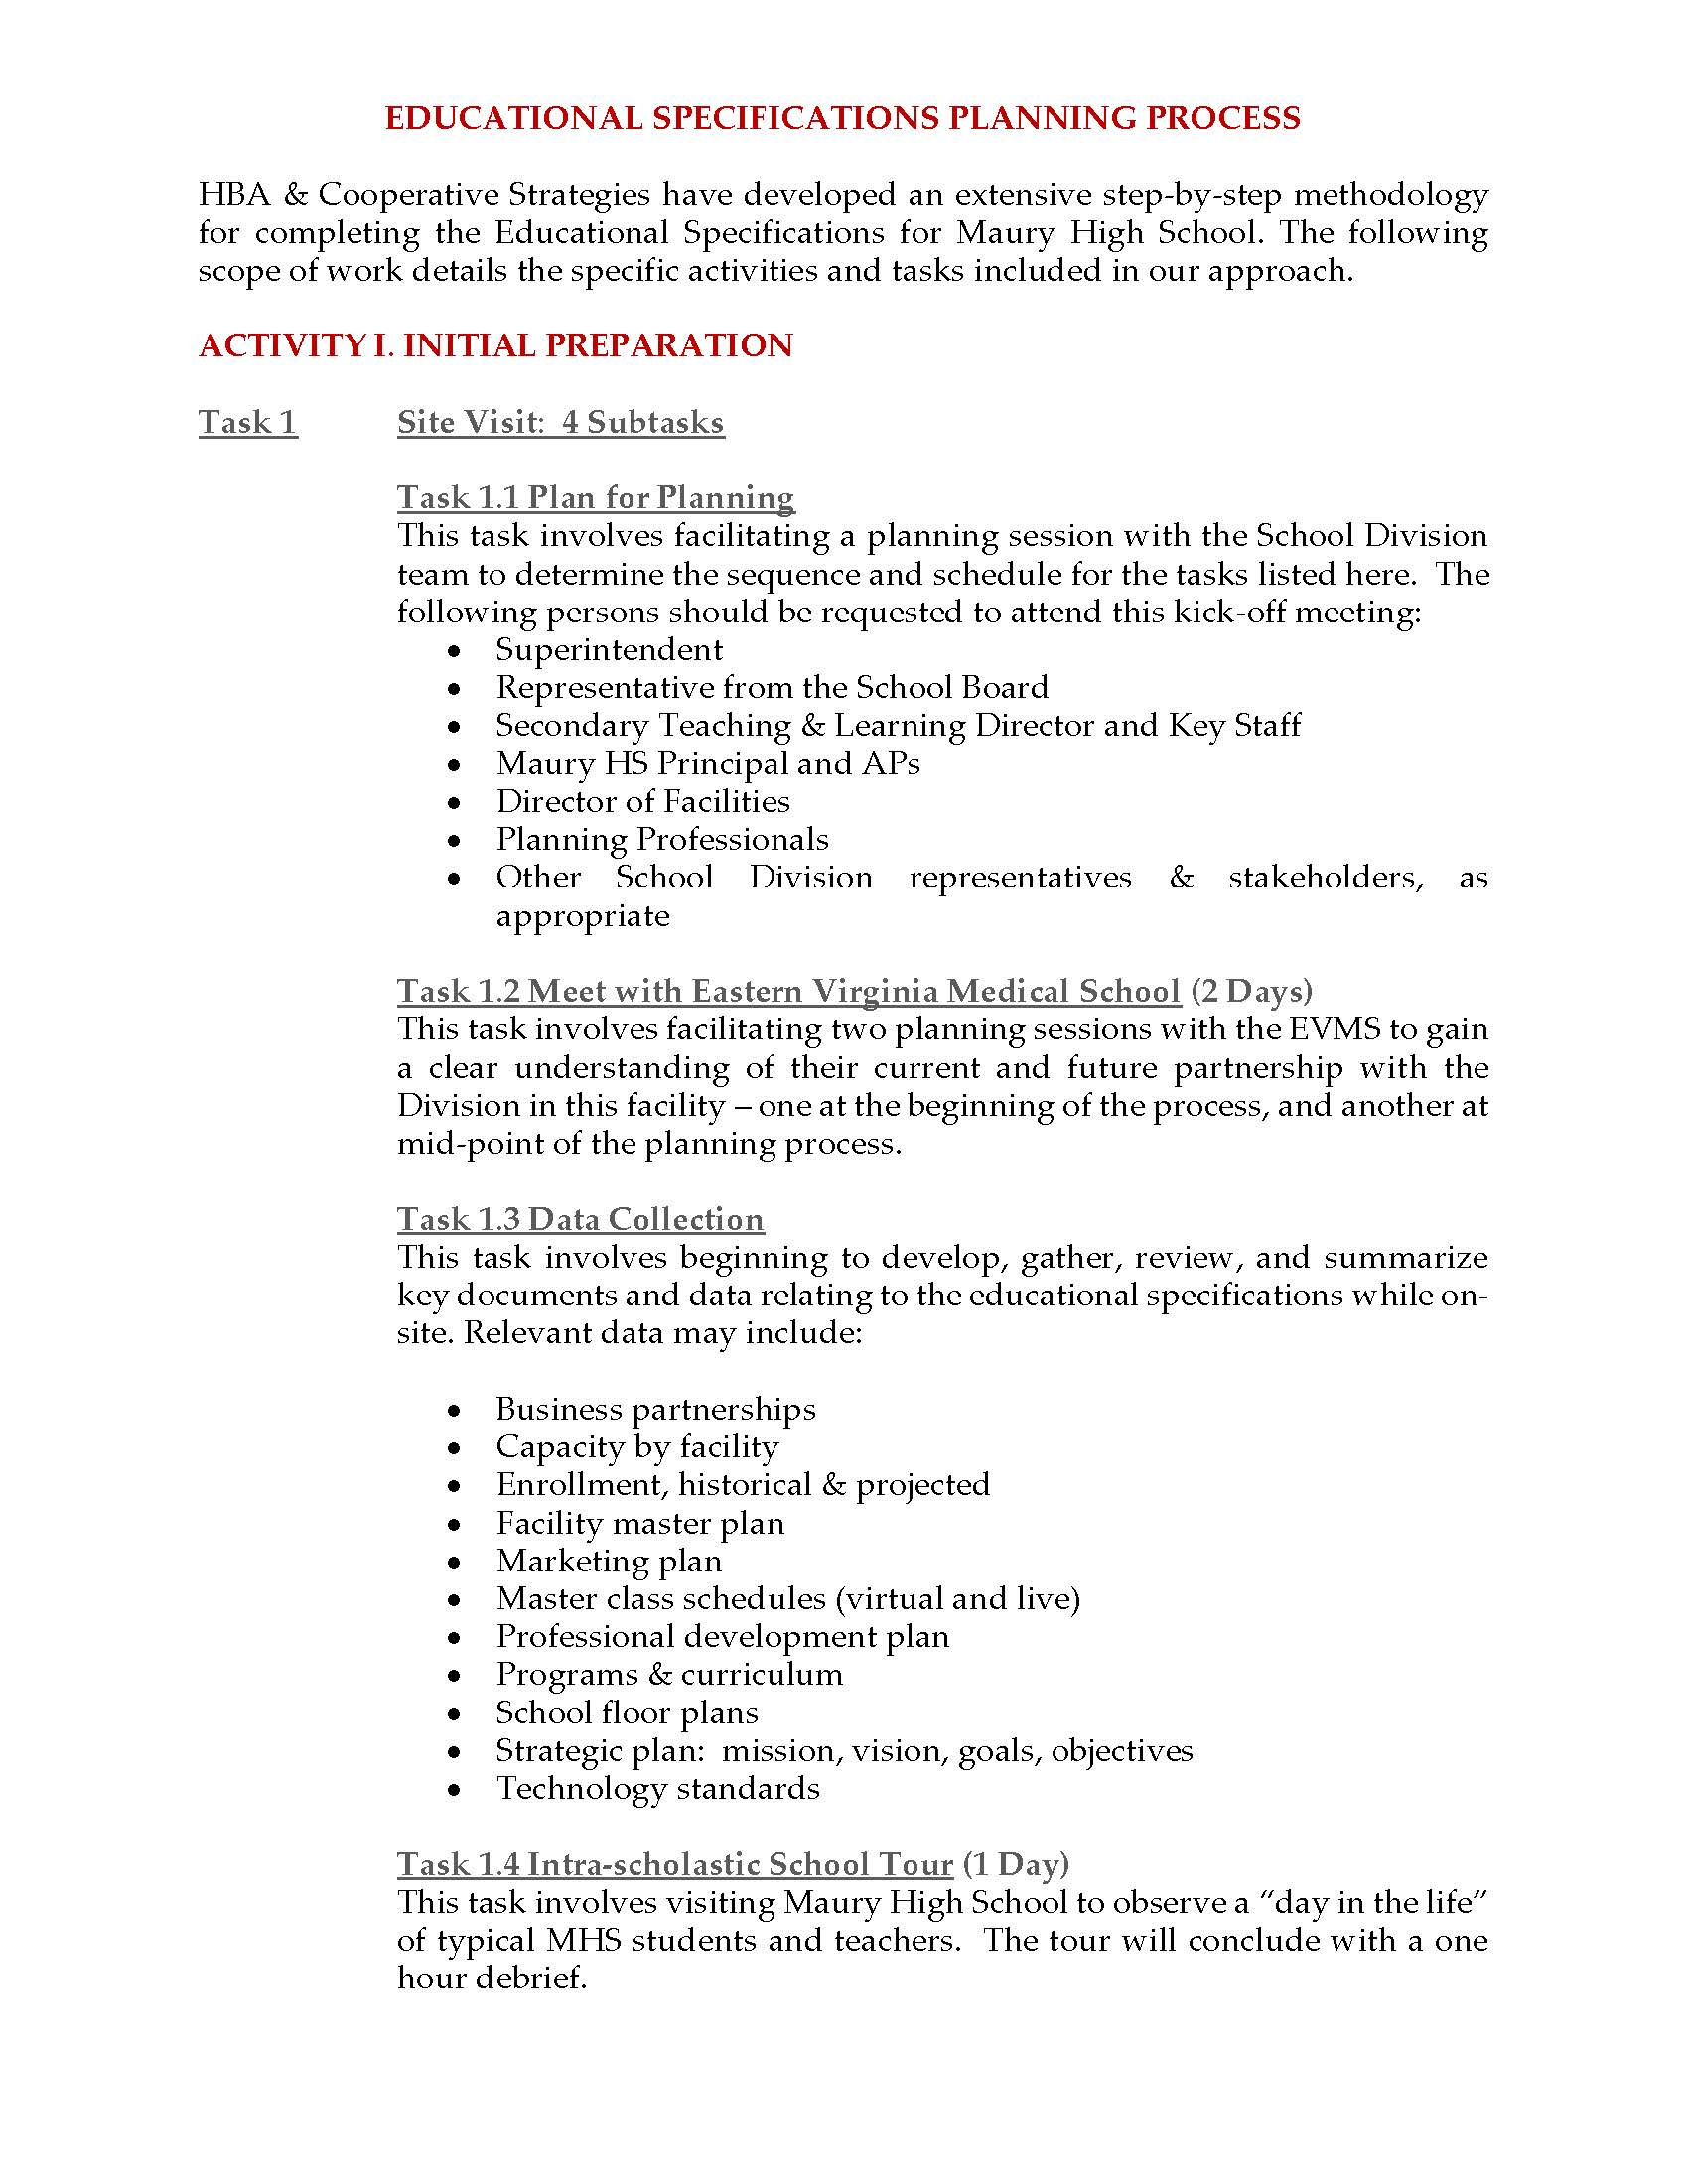 Maury High School Educational Specifications | Just another